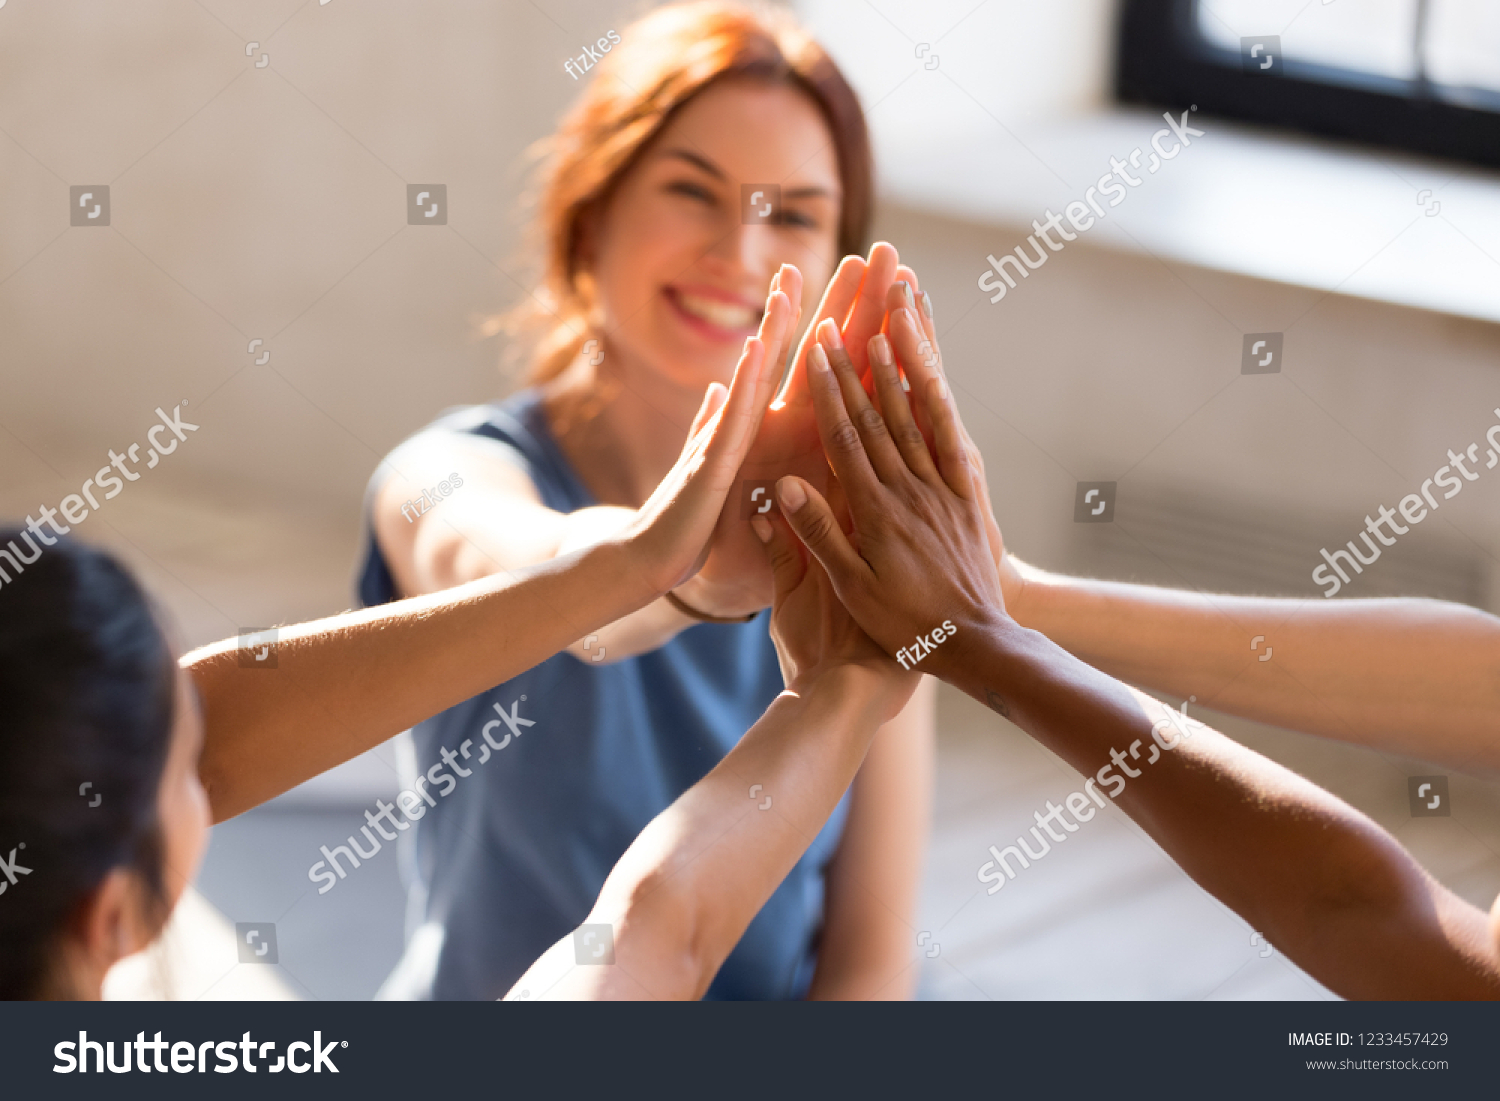 Cheerful diverse young girls sitting together in sports studio before starts training giving high five feel happy and healthy, close up focus on hands. Respect and trust, celebration and amity concept #1233457429